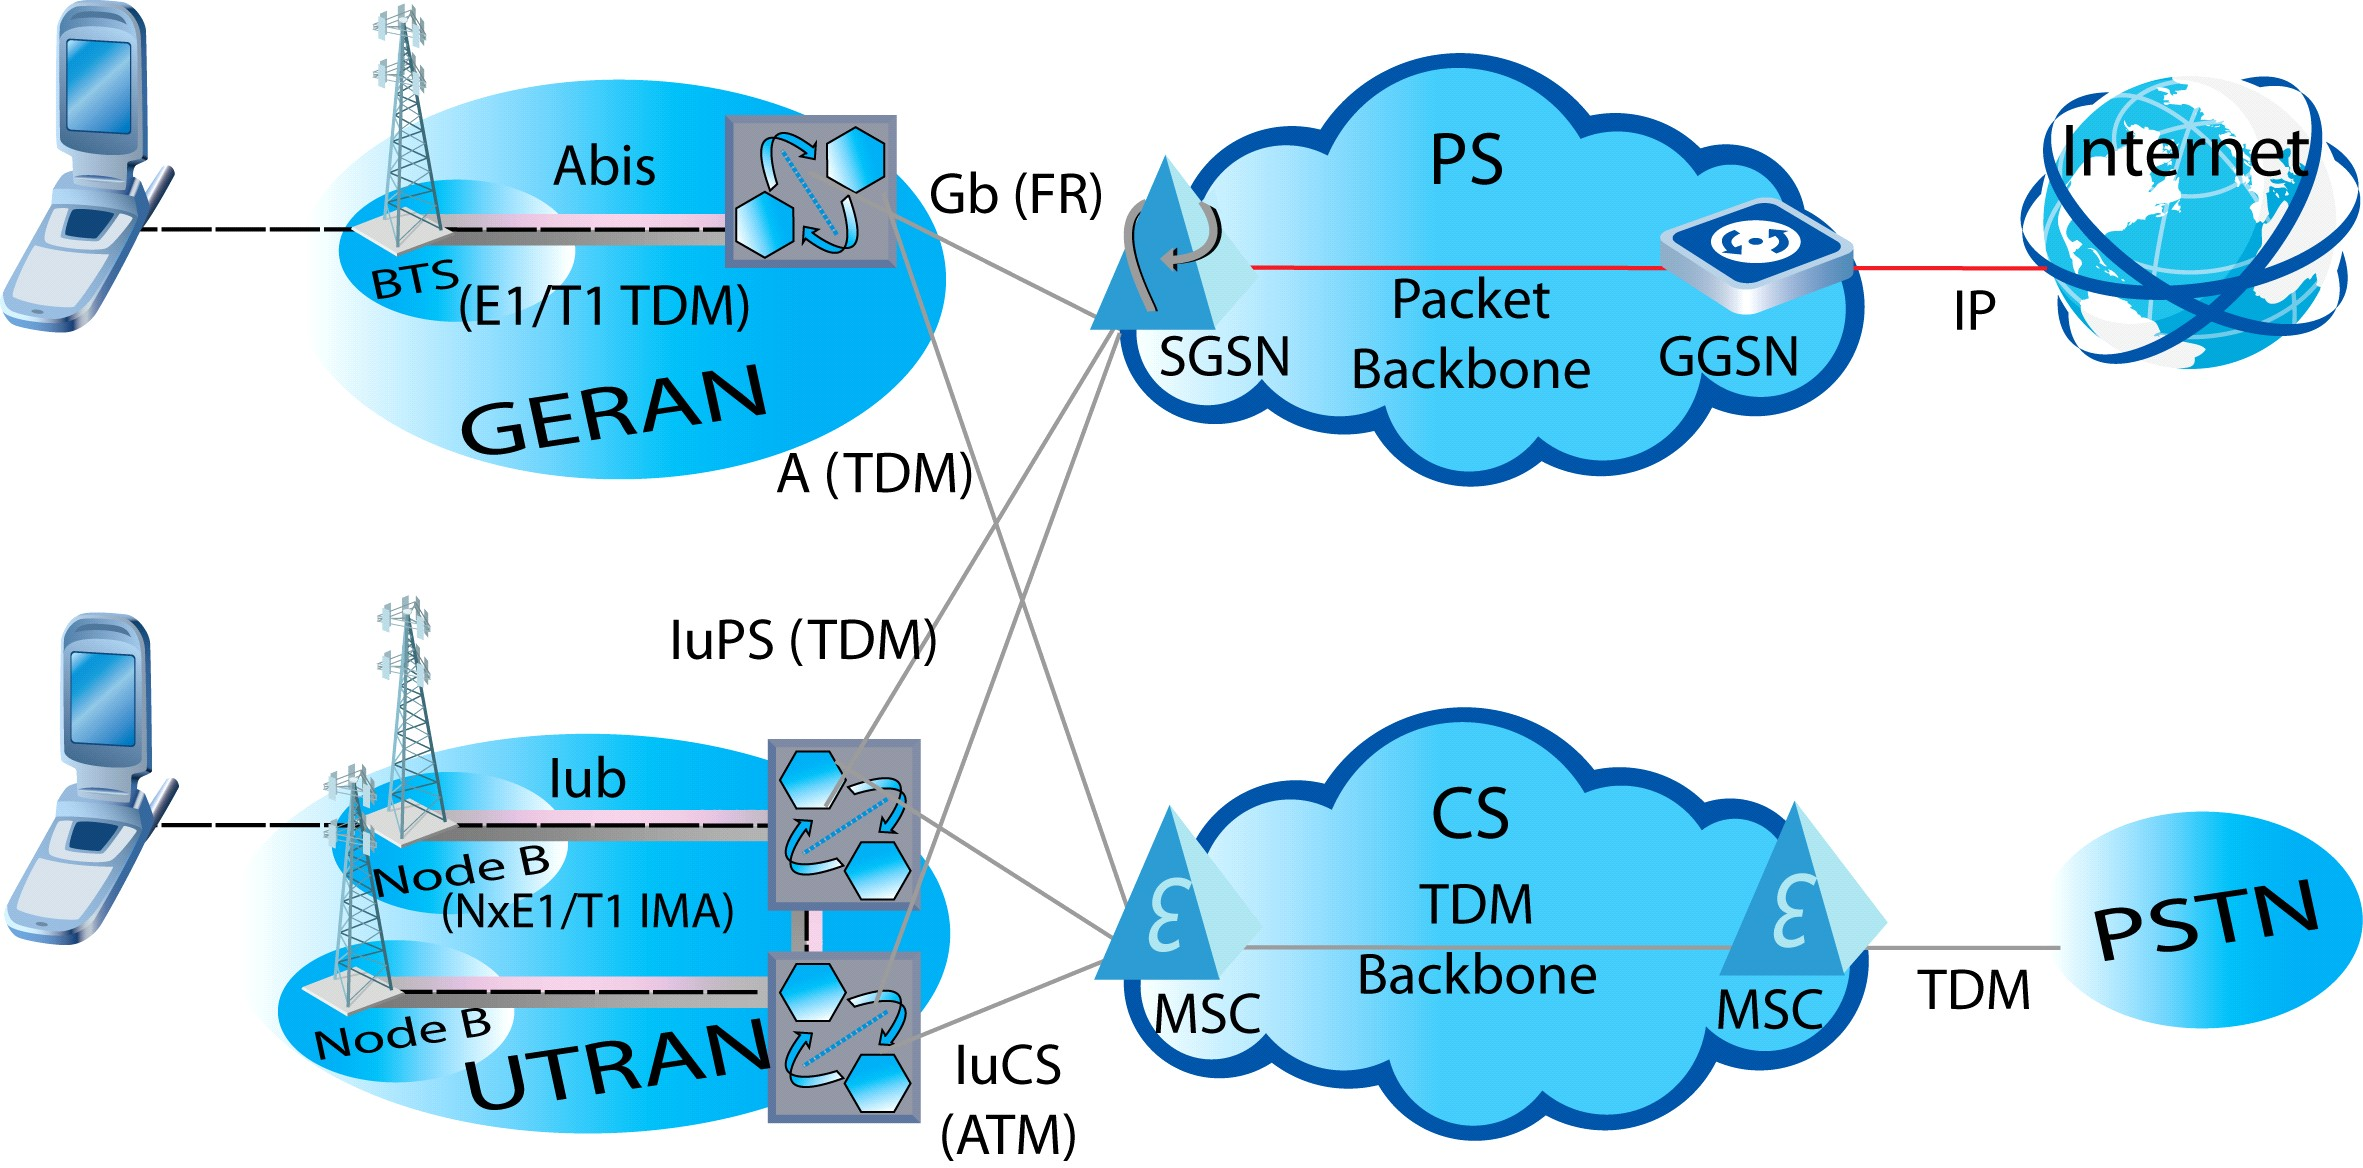 3G Network architecture based on 3GPP R99